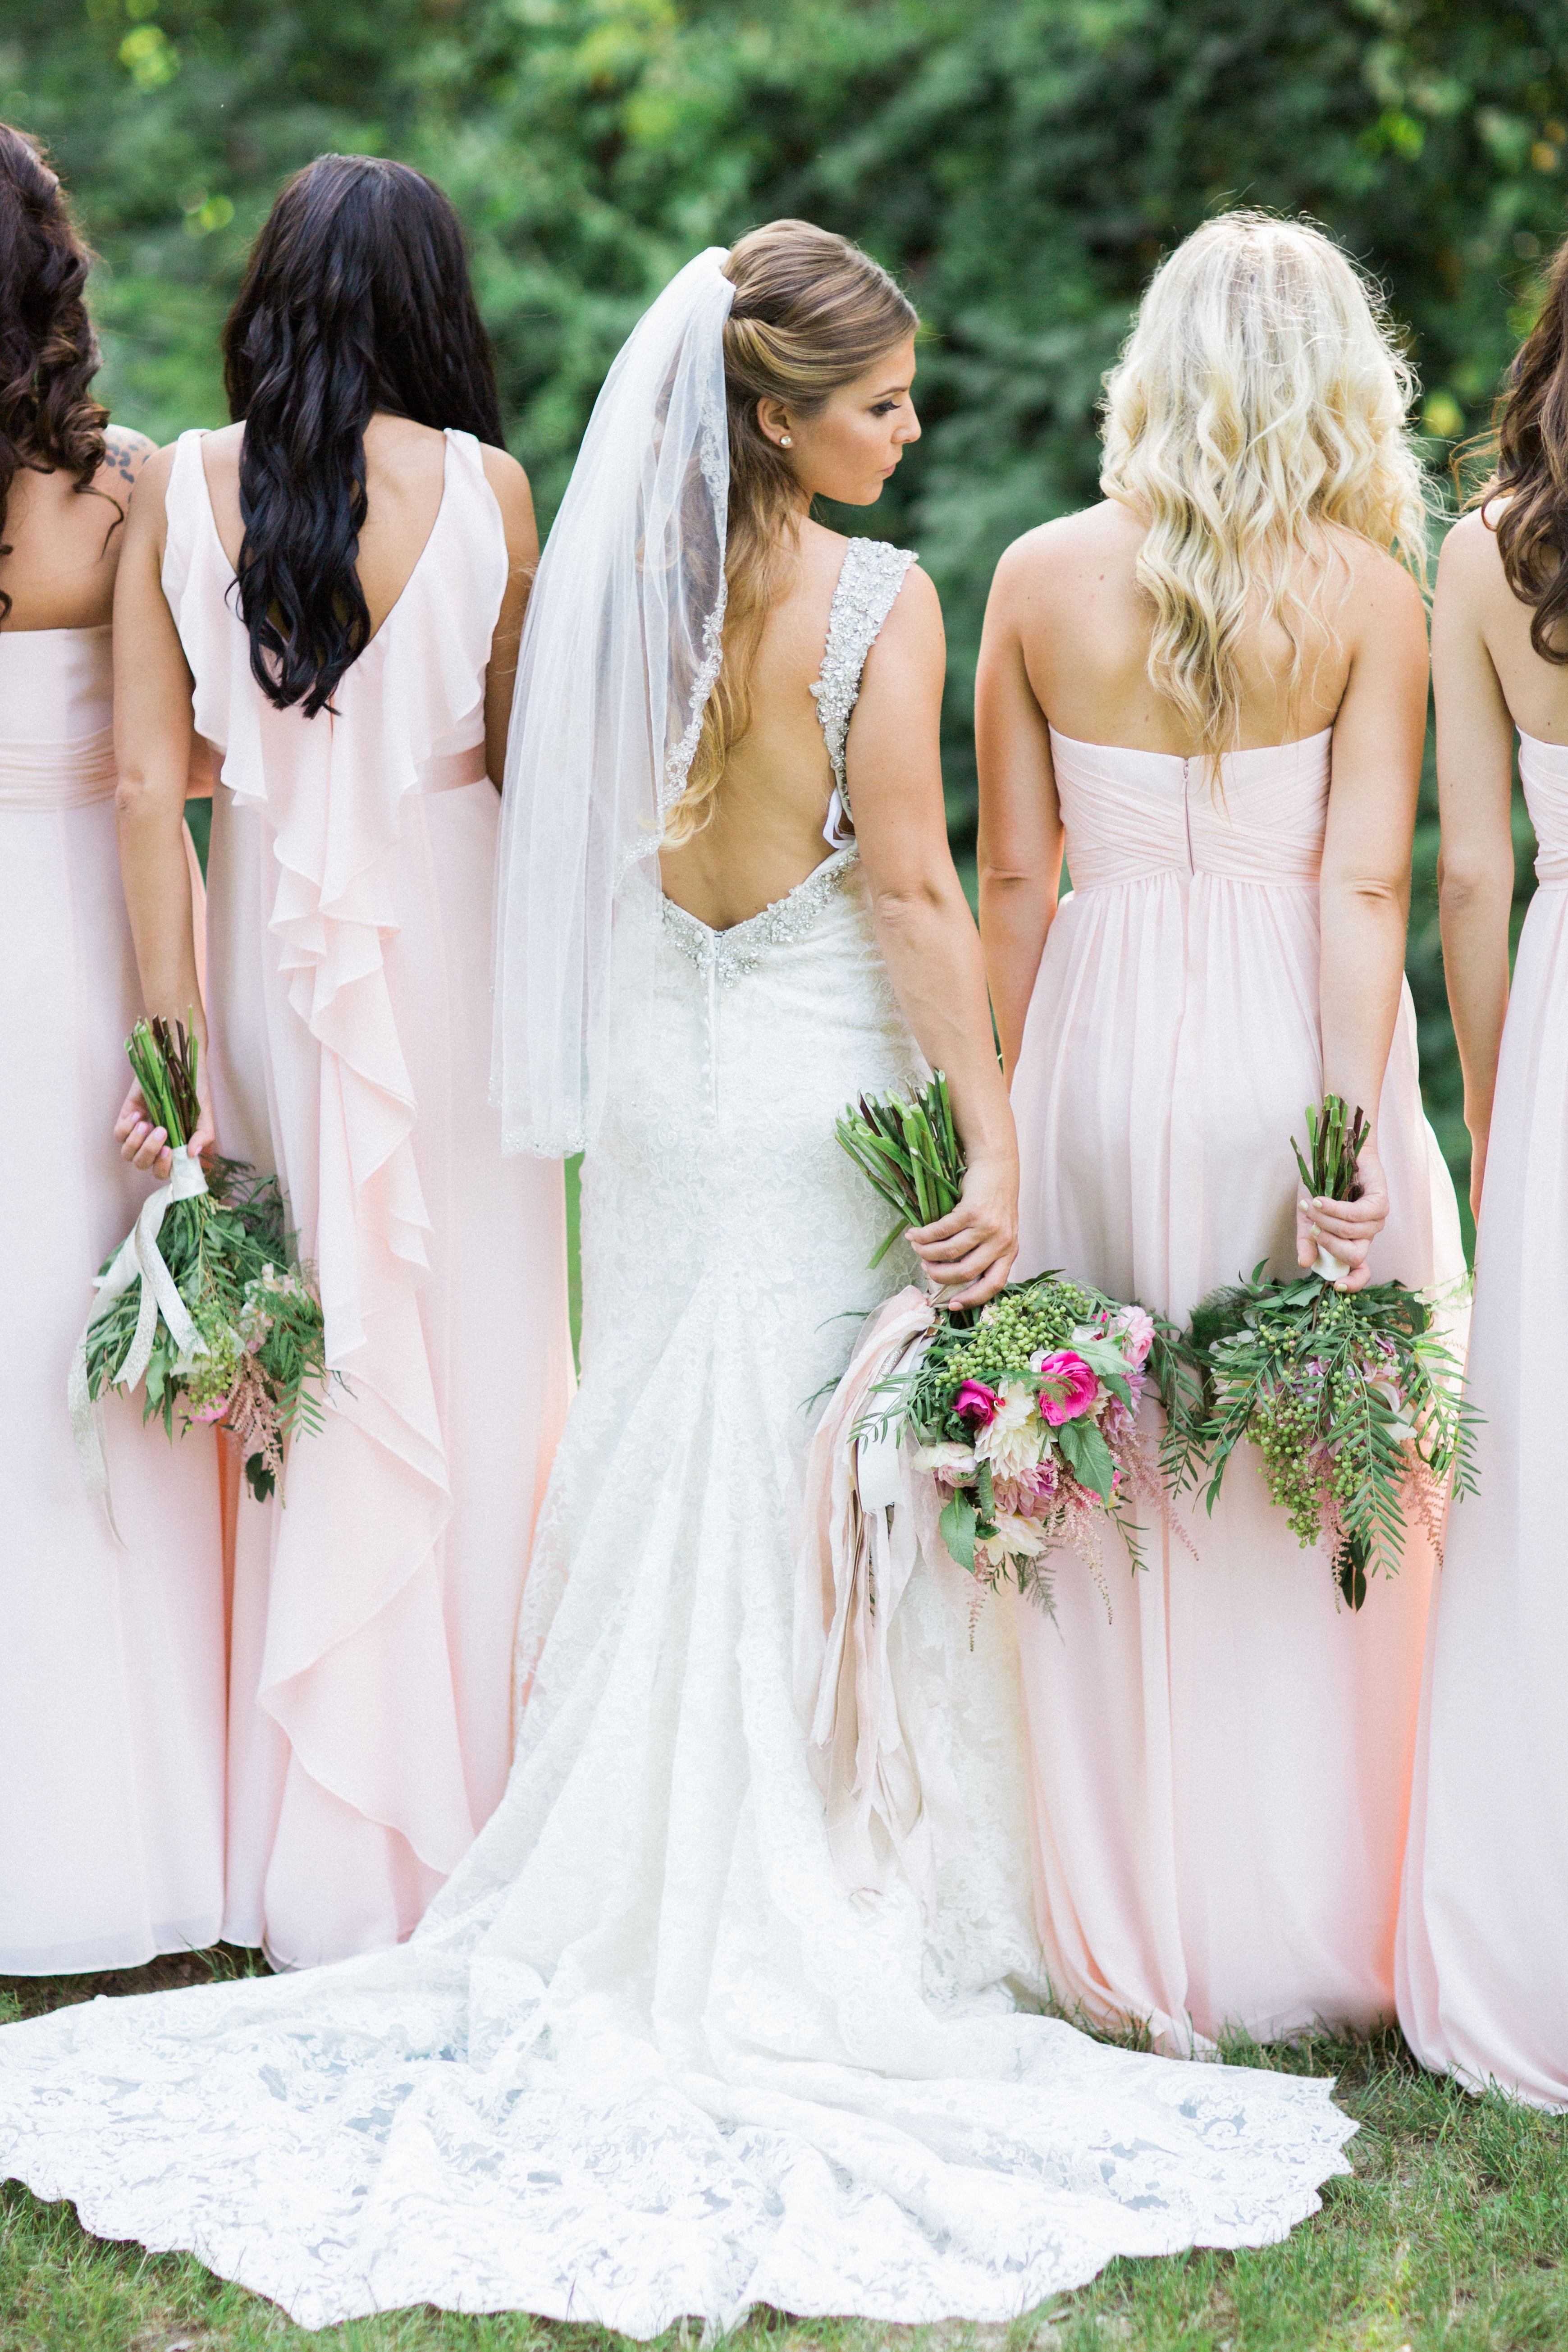 Pink davidus bridal chiffon bridesmaid dresses bridesmaid dresses